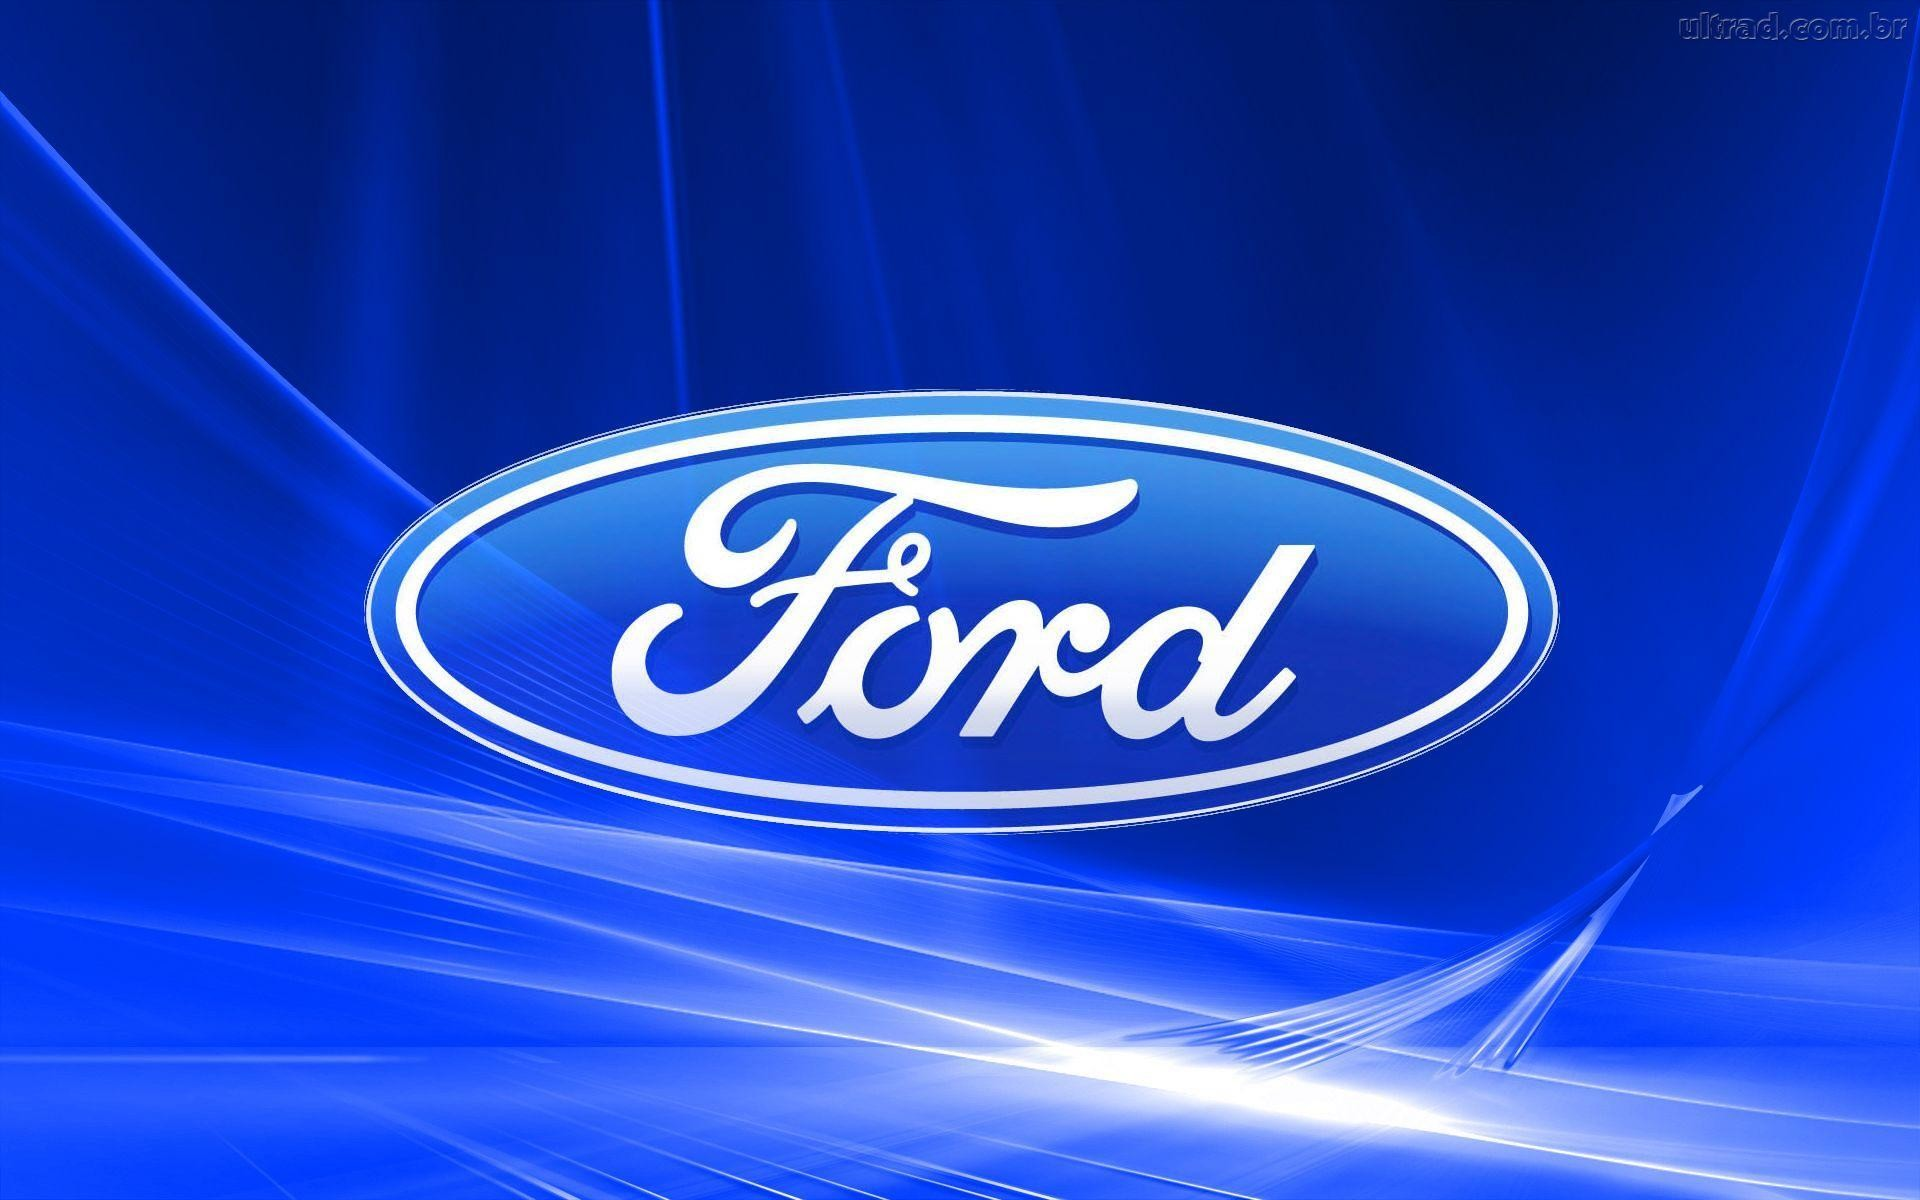 Ford Logo Wallpaper 10330 Wallpapers HD | colourinwallpaper.